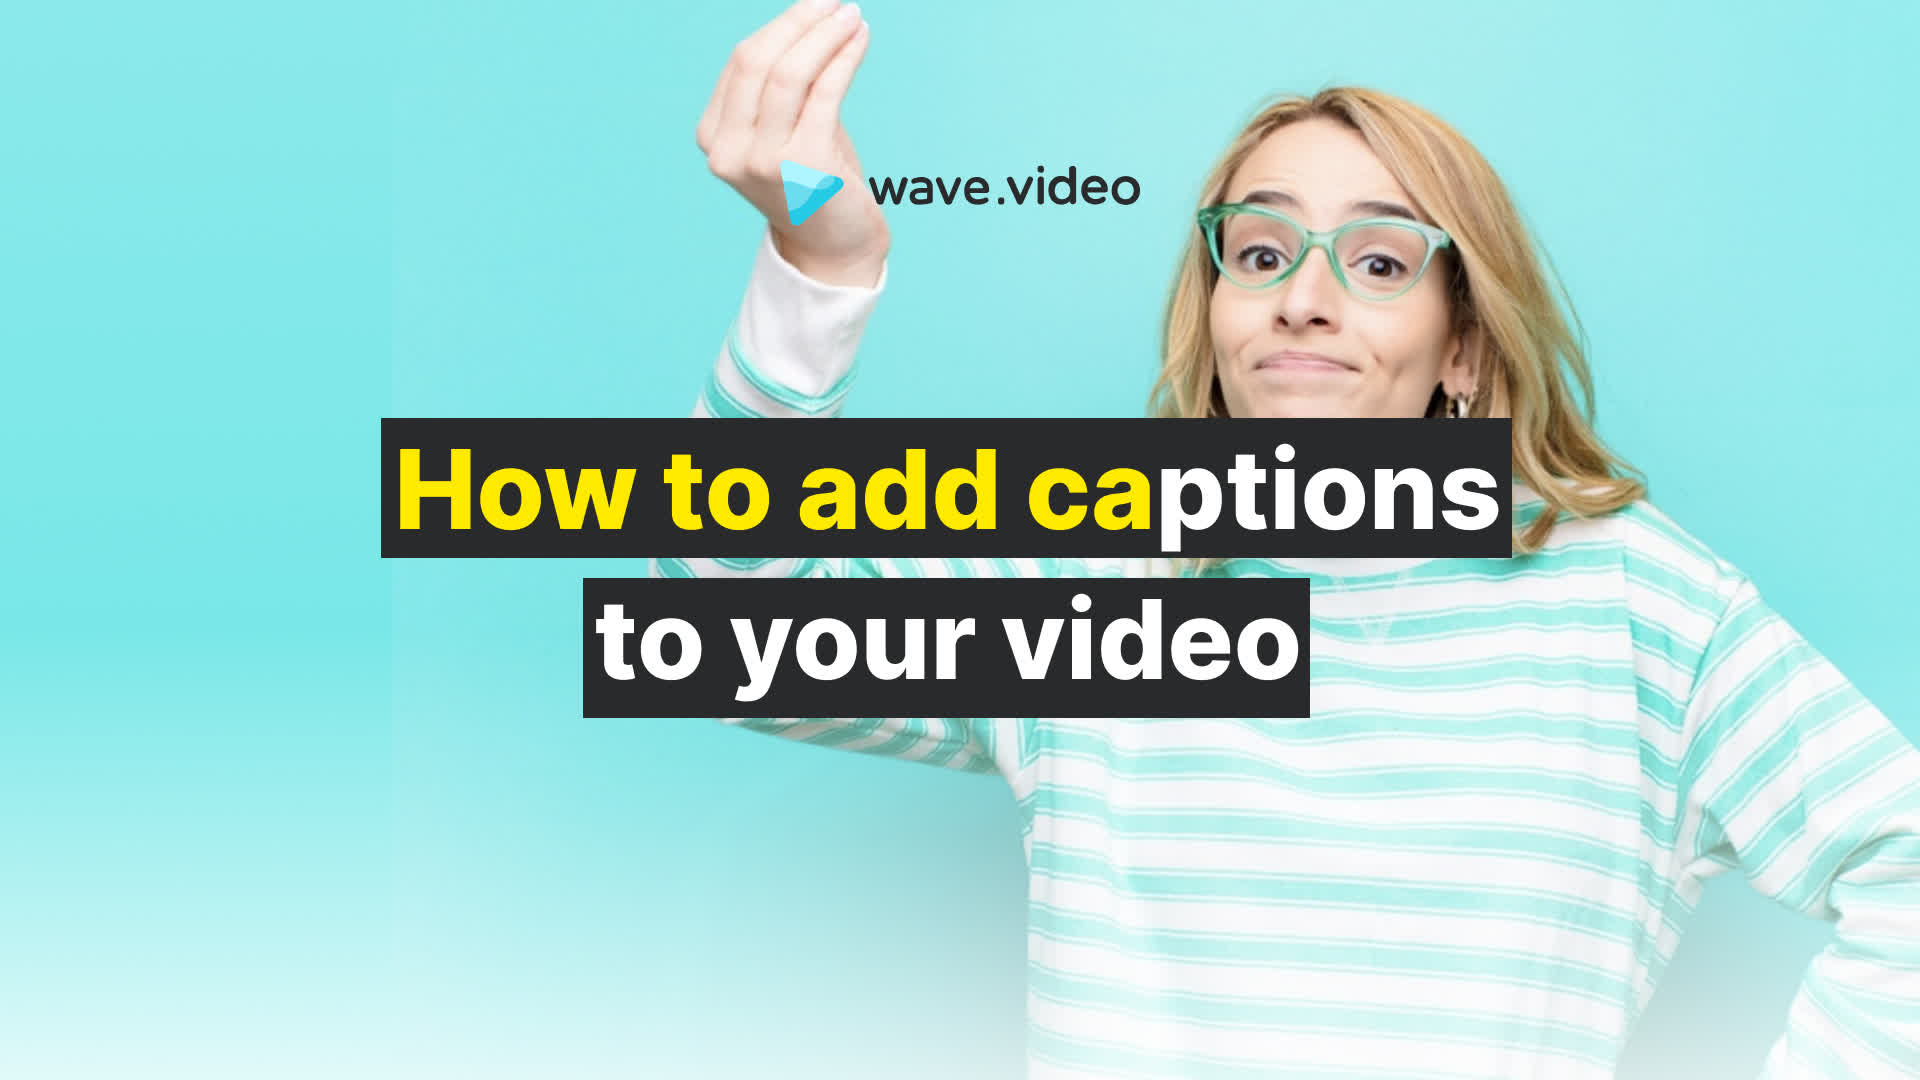 How to add captions to your video